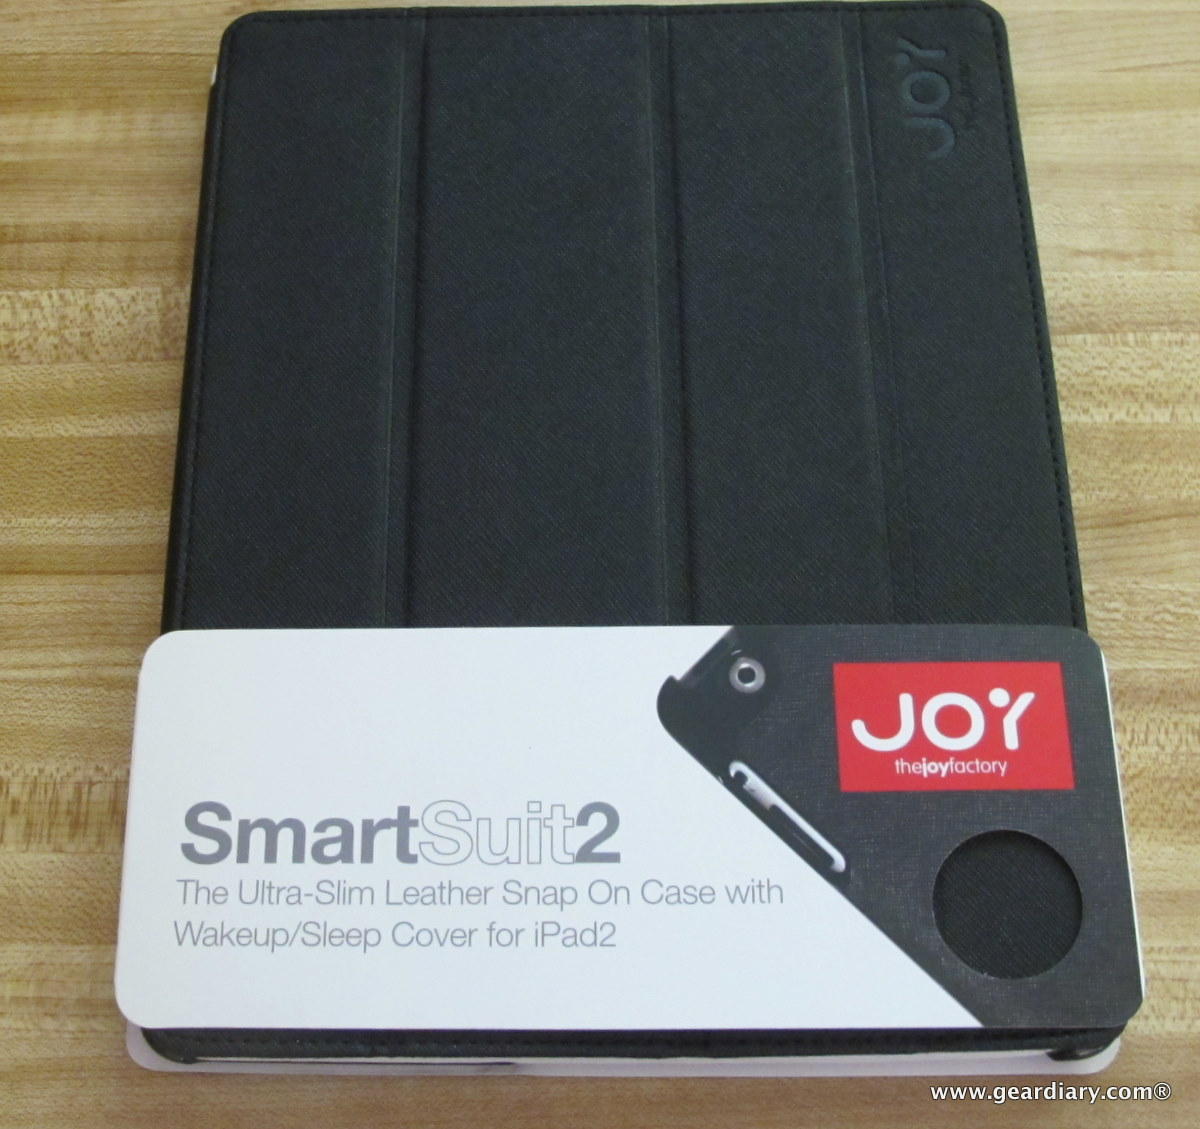 GearDiary iPad 2 Case Review: The Joy Factory's SmartSuit2